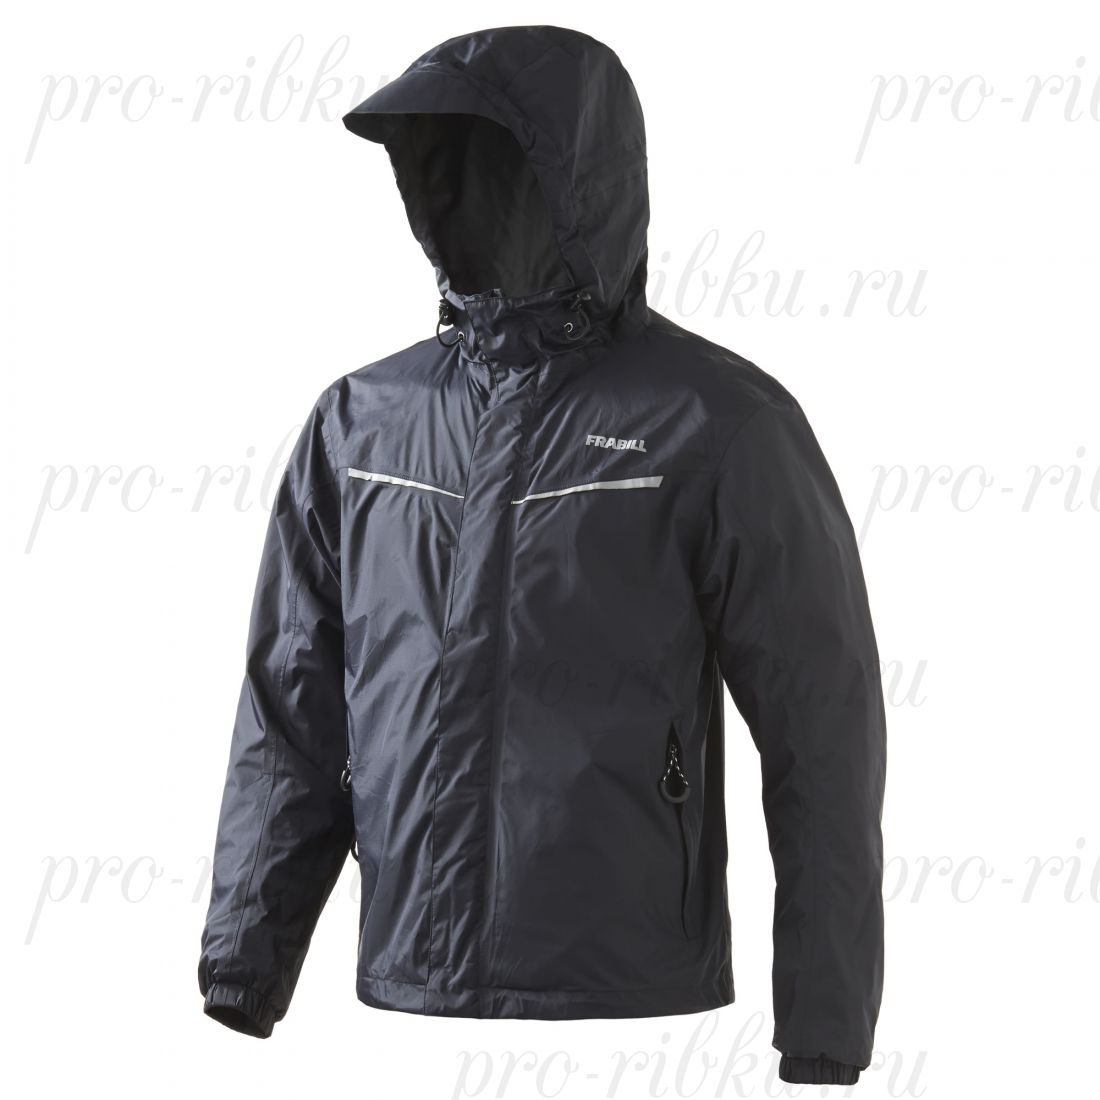 Куртка штормовая FRABILL Stow Jacket LT Brown, р. S